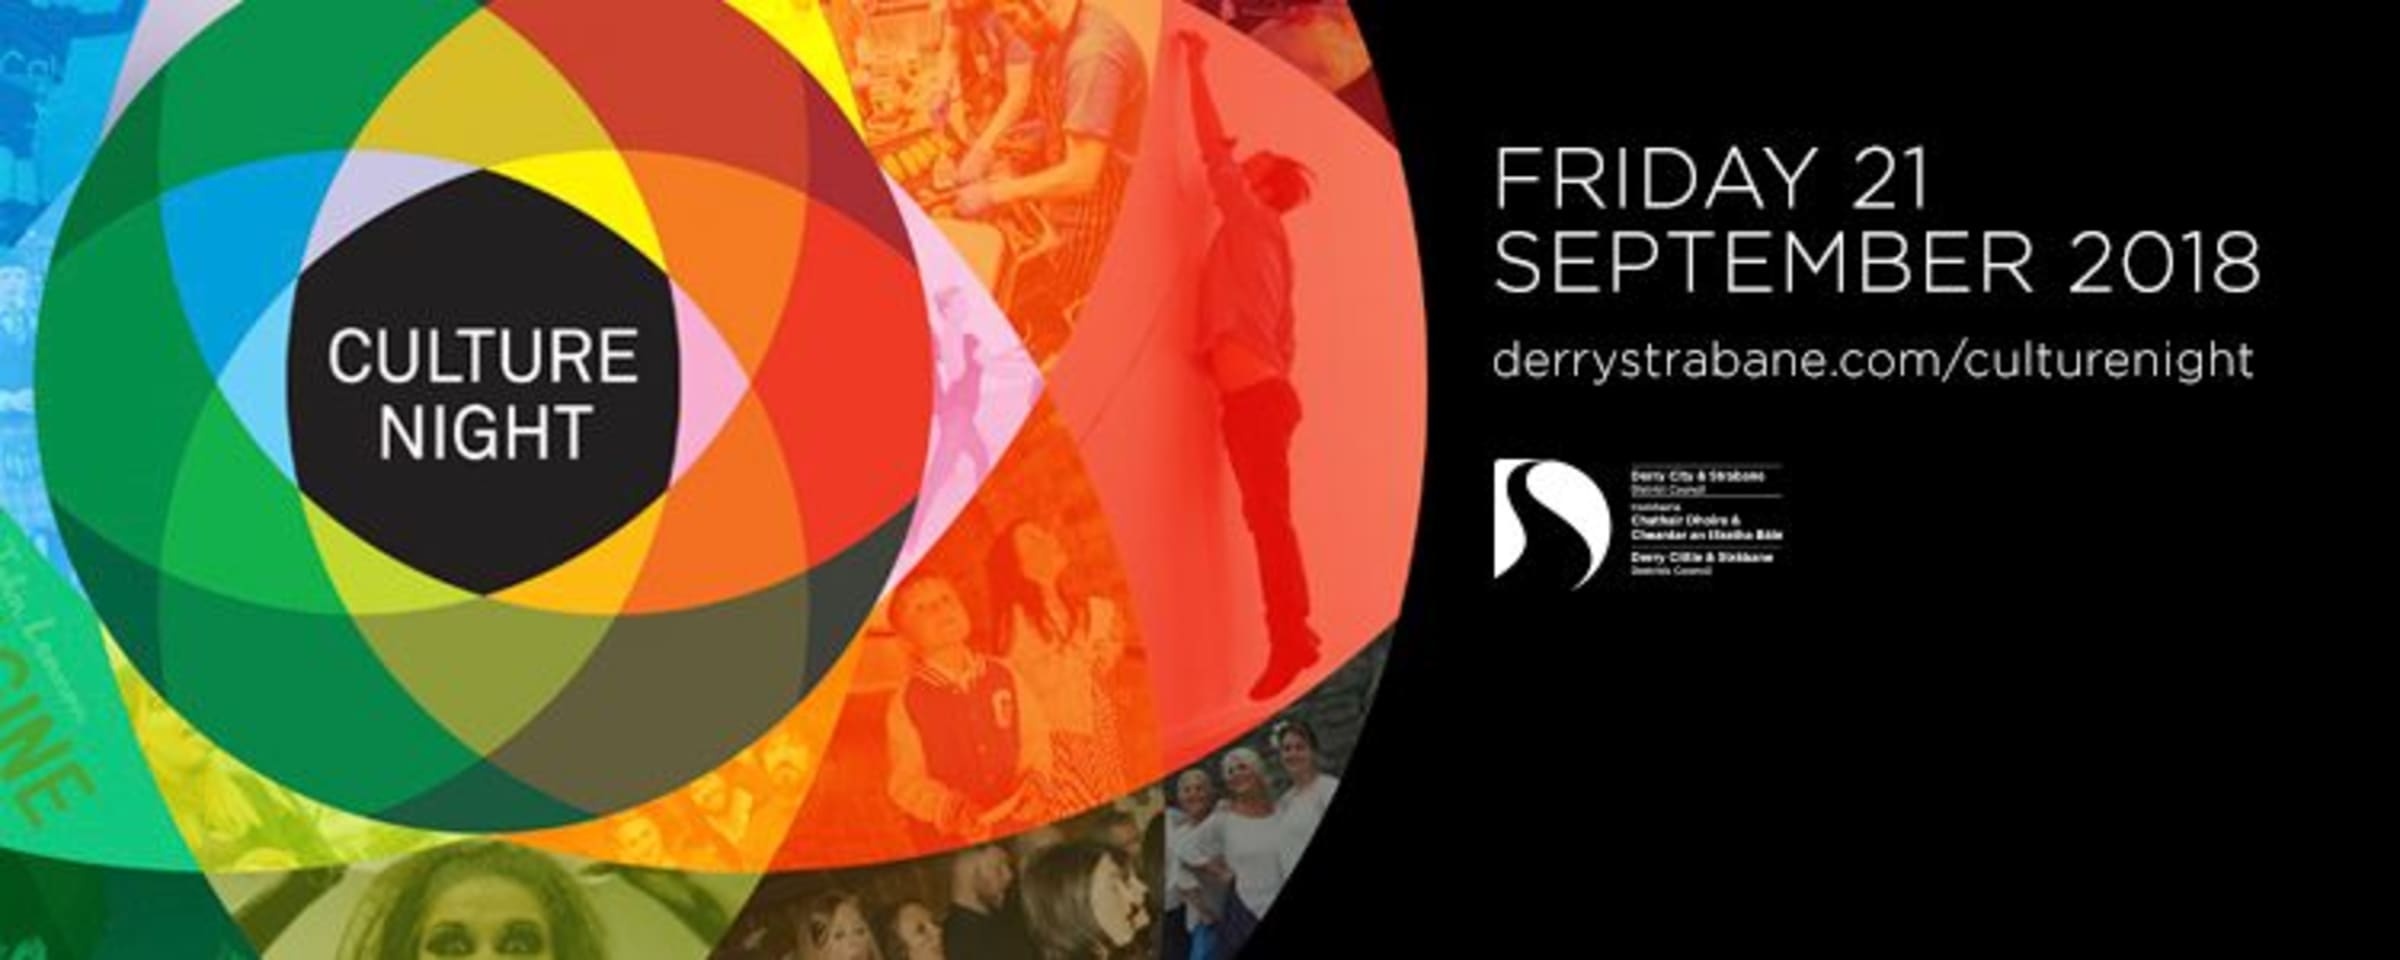 Culture night logo for Derry and Strabane